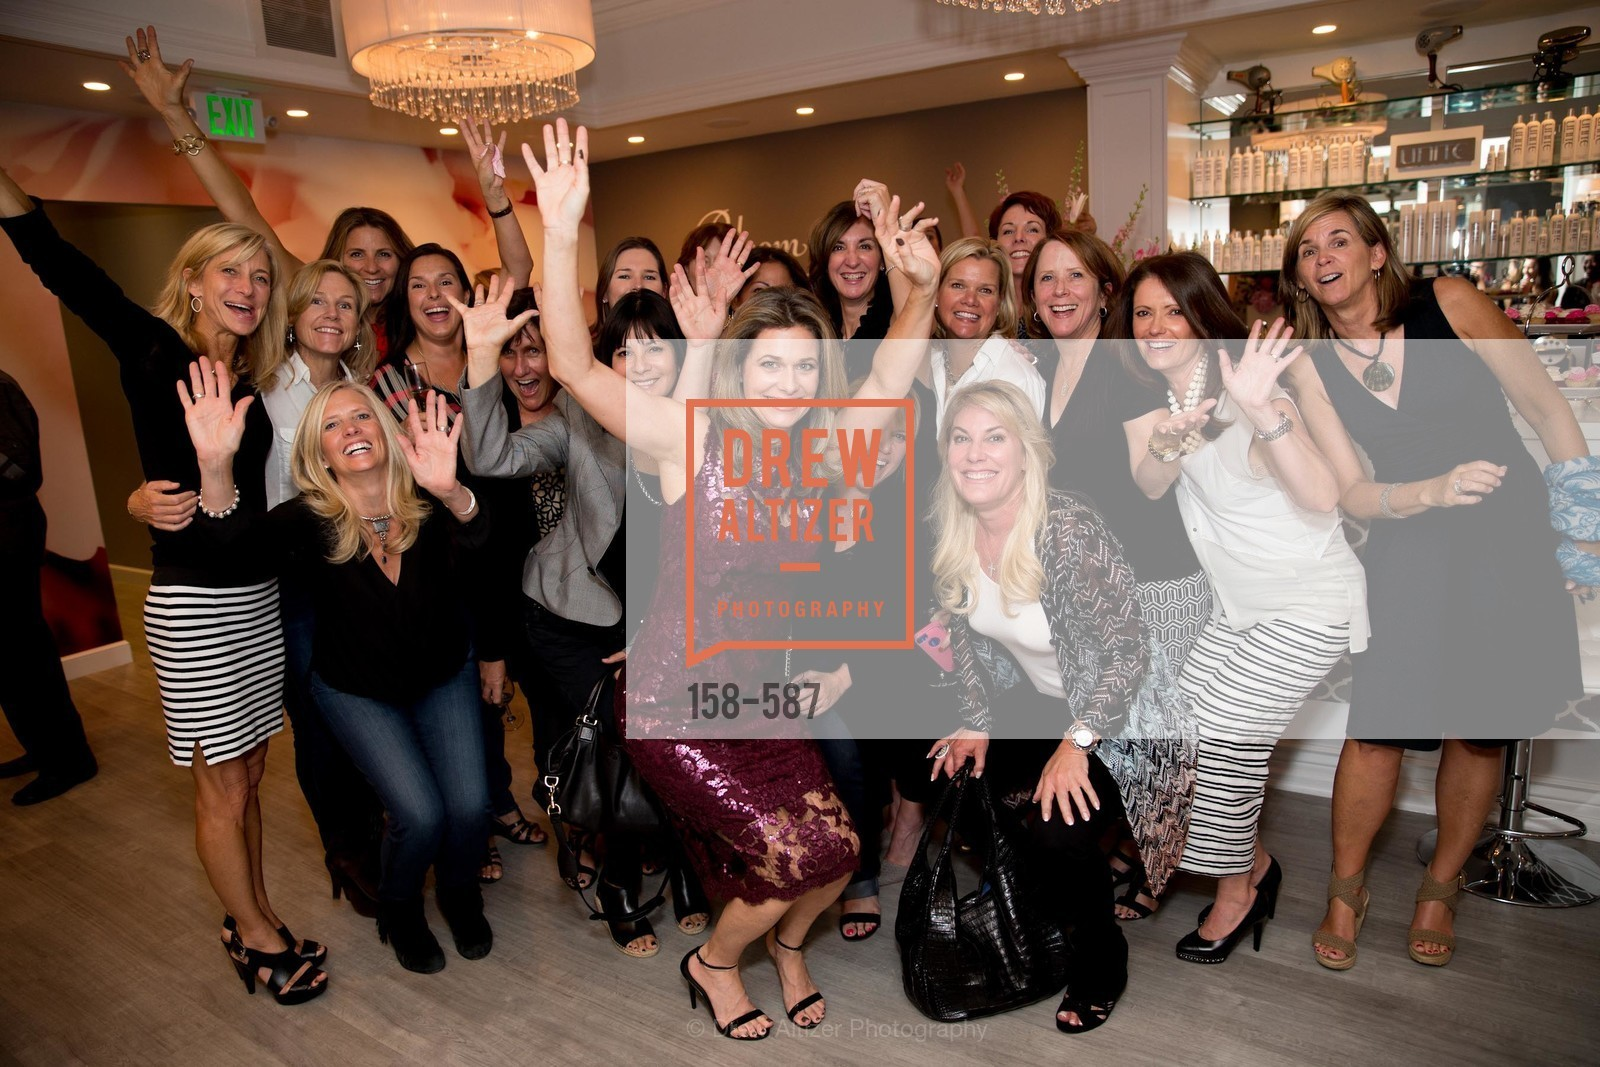 Bloom Group Shot, BLOOM BLOW DRY BAR Grand Opening Party, US, October 1st, 2014,Drew Altizer, Drew Altizer Photography, full-service agency, private events, San Francisco photographer, photographer california